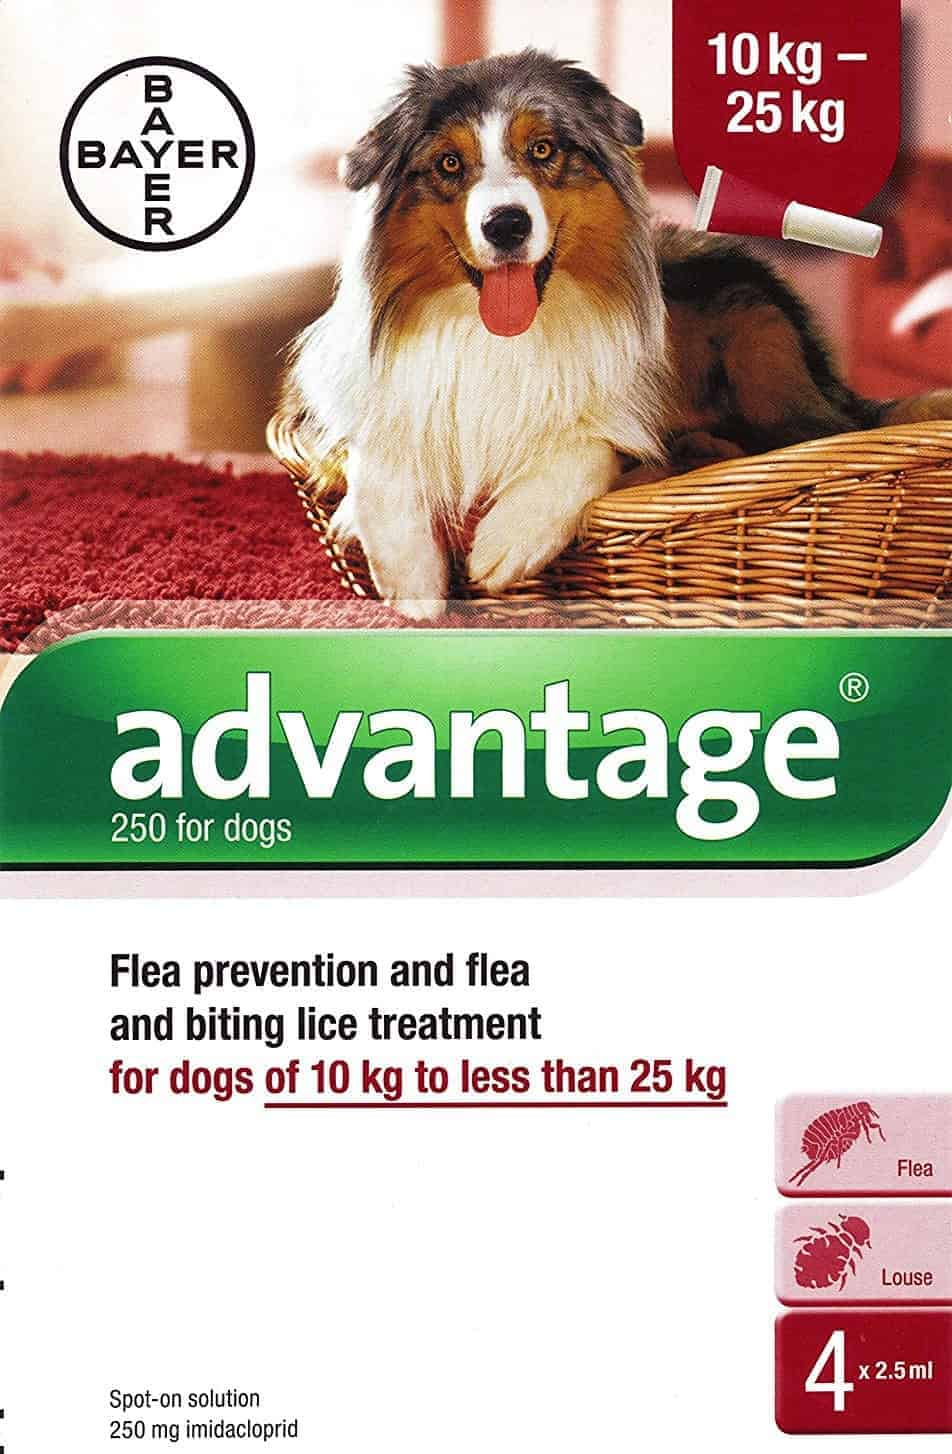 Bayer Advantage 250 For Dogs